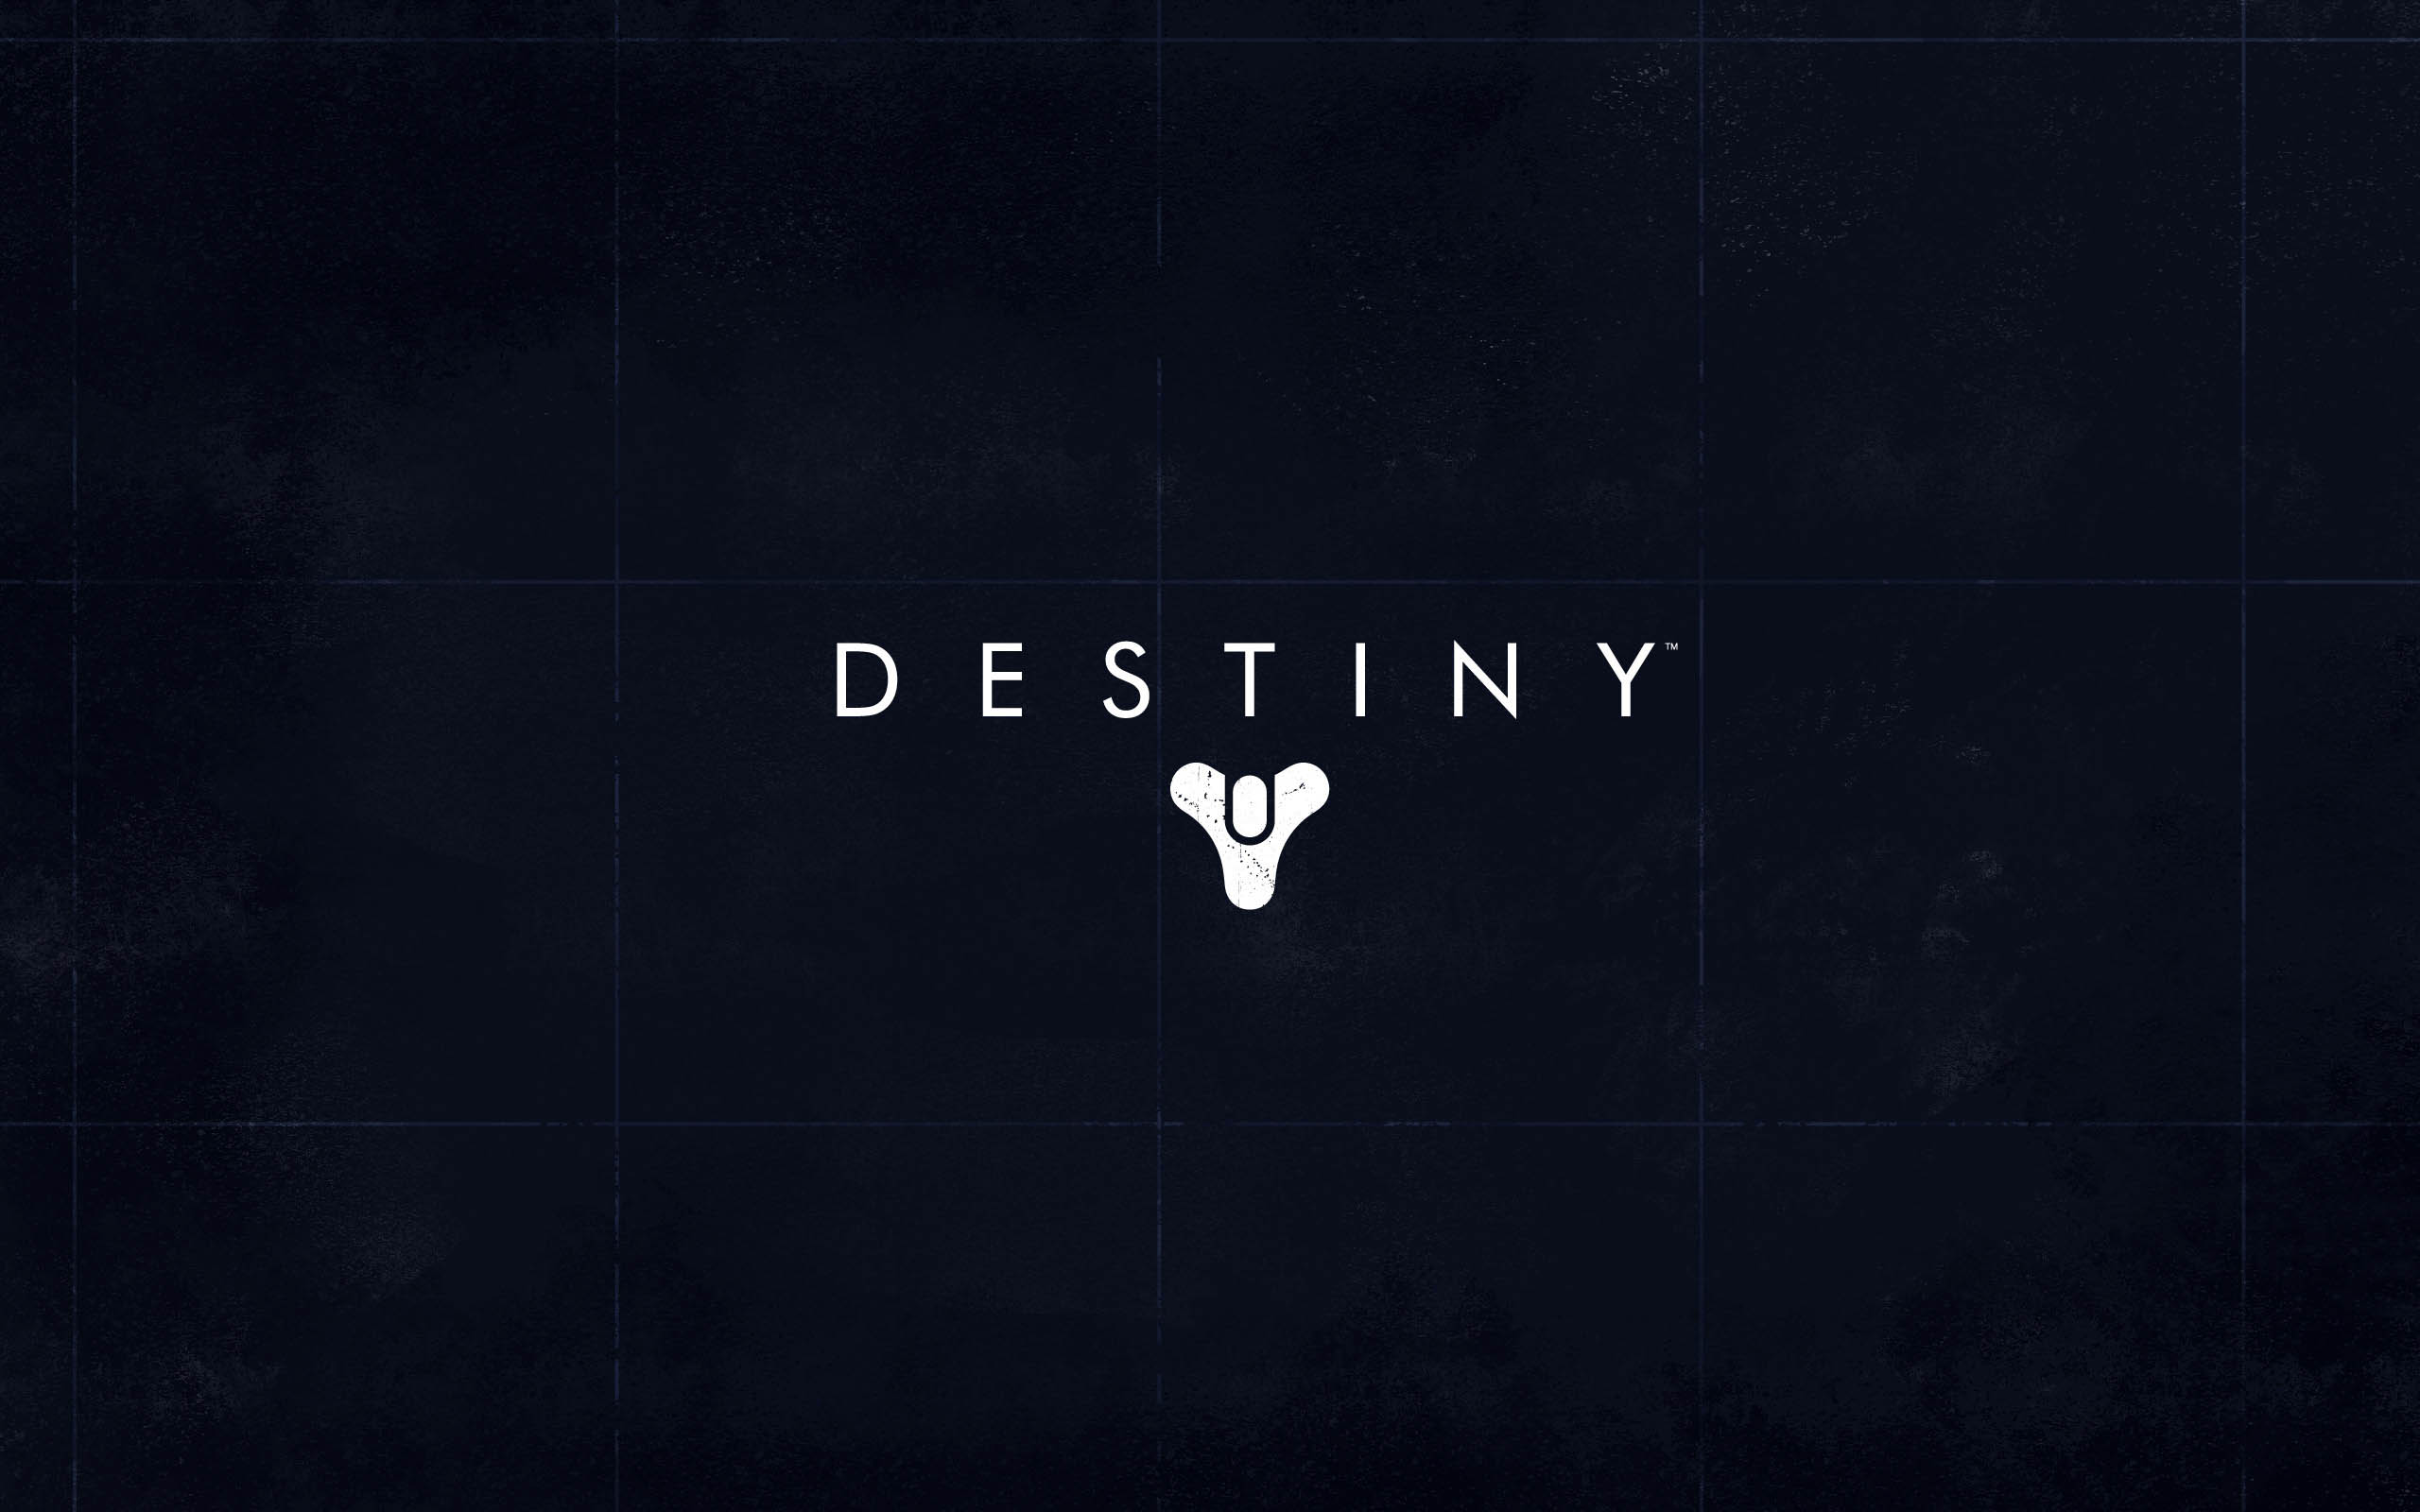 Destiny Dark Logo 2048x1152 Resolution